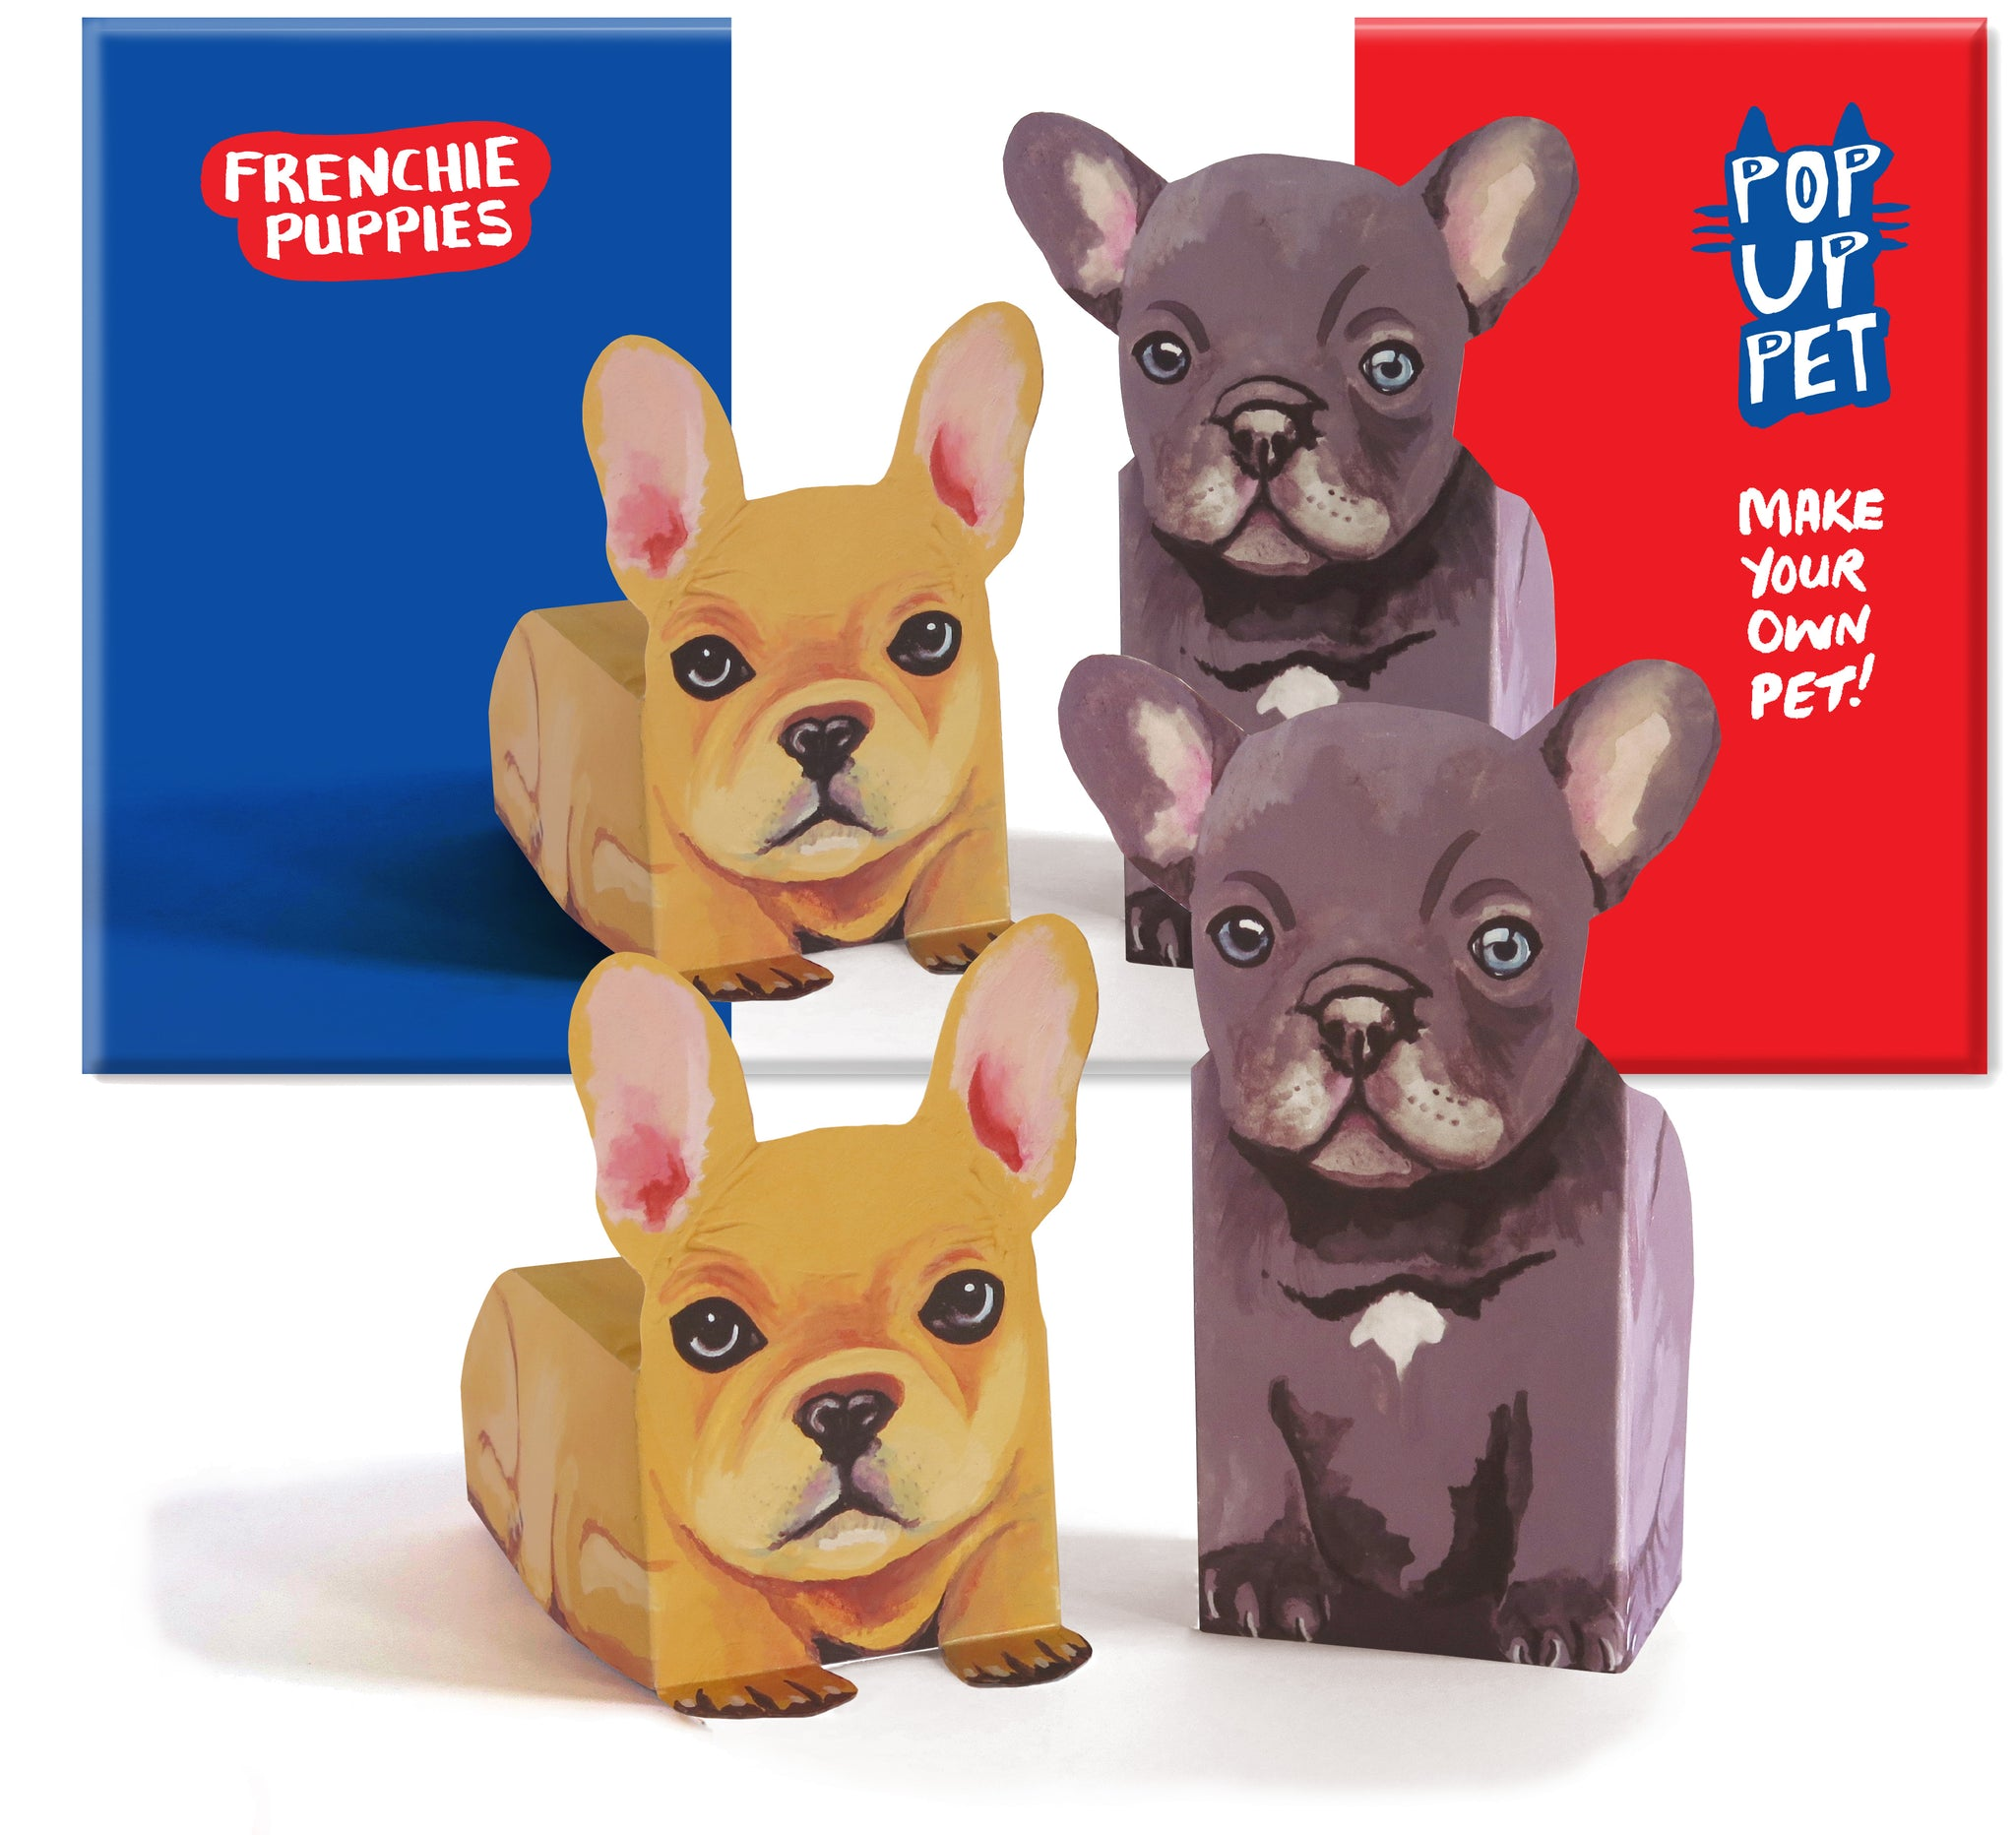 Pop Up Pet Frenchie Puppies Www Rosieflo Co Uk